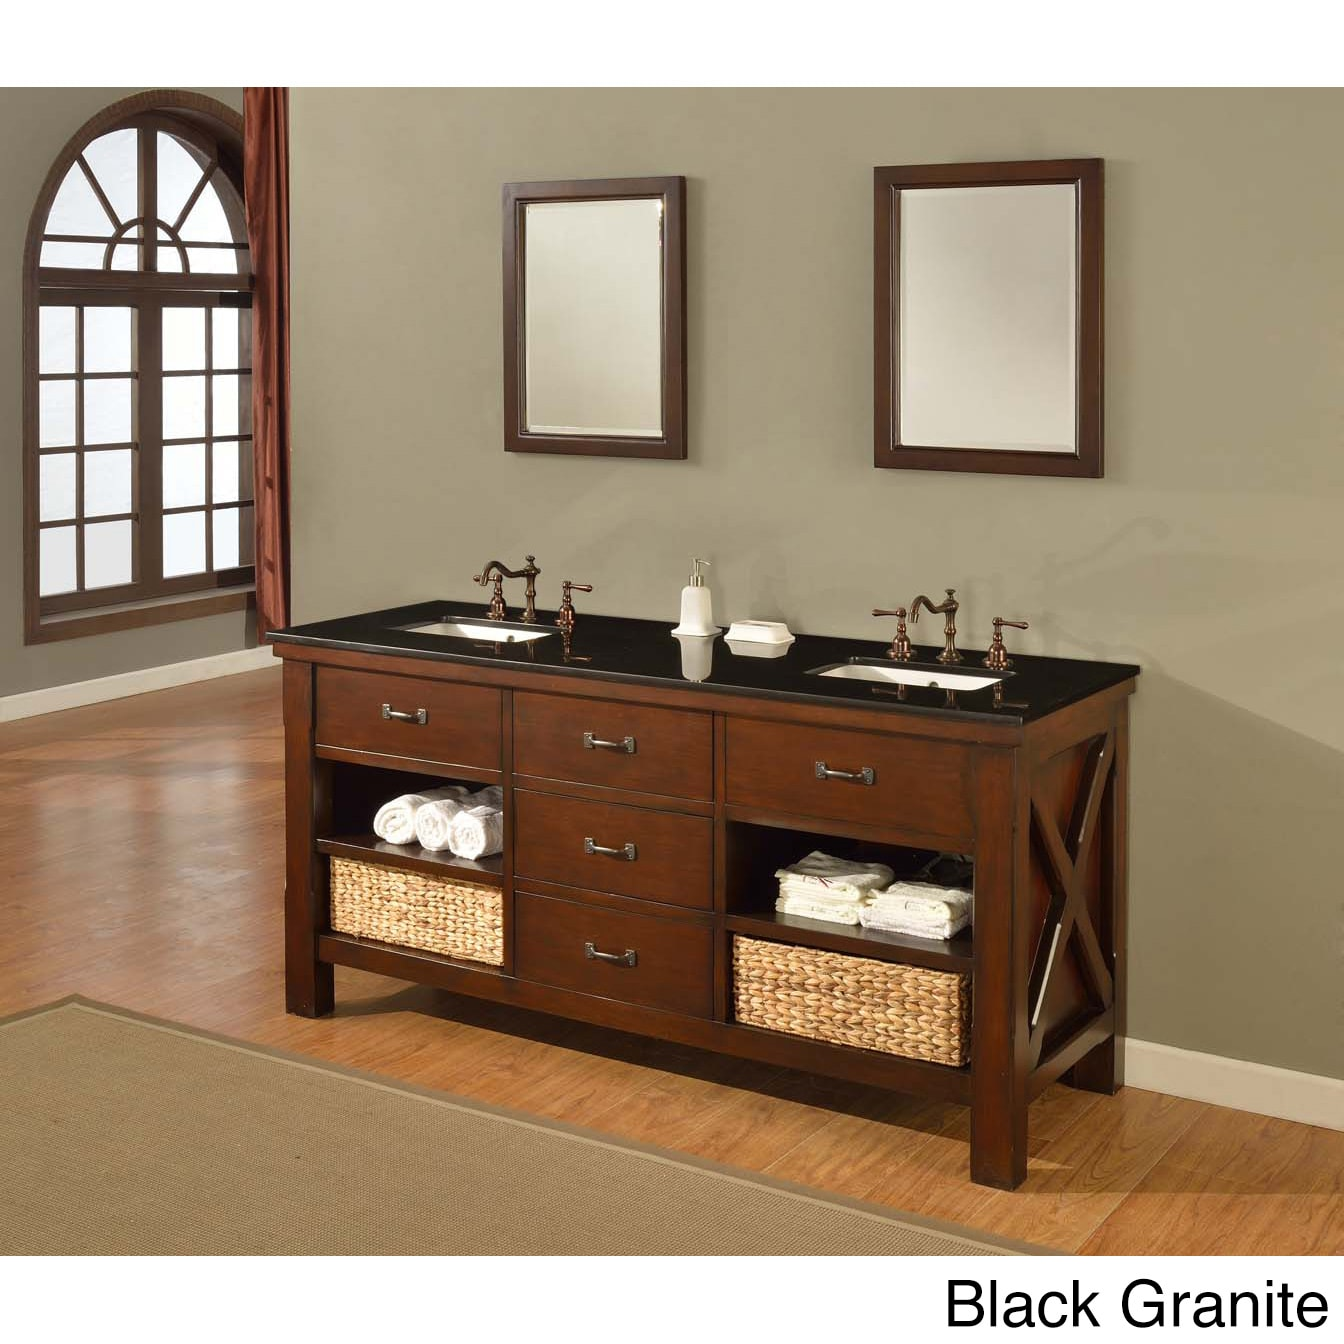 in open bathroom with vanity images single gallery wyndham black inch countertop bath